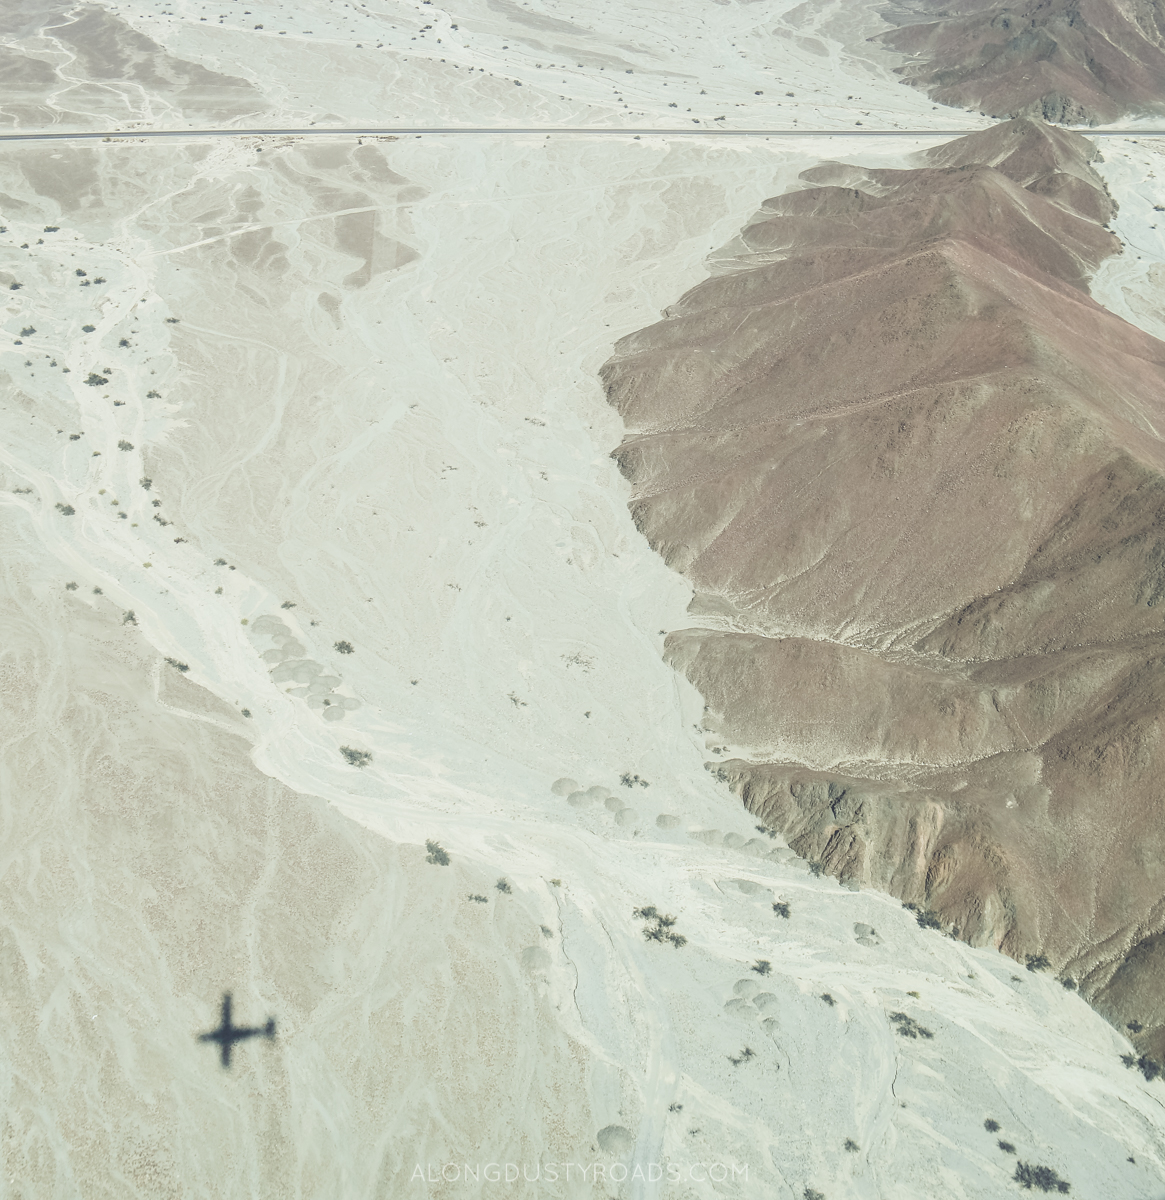 Flying over the Nazca lines, Peru